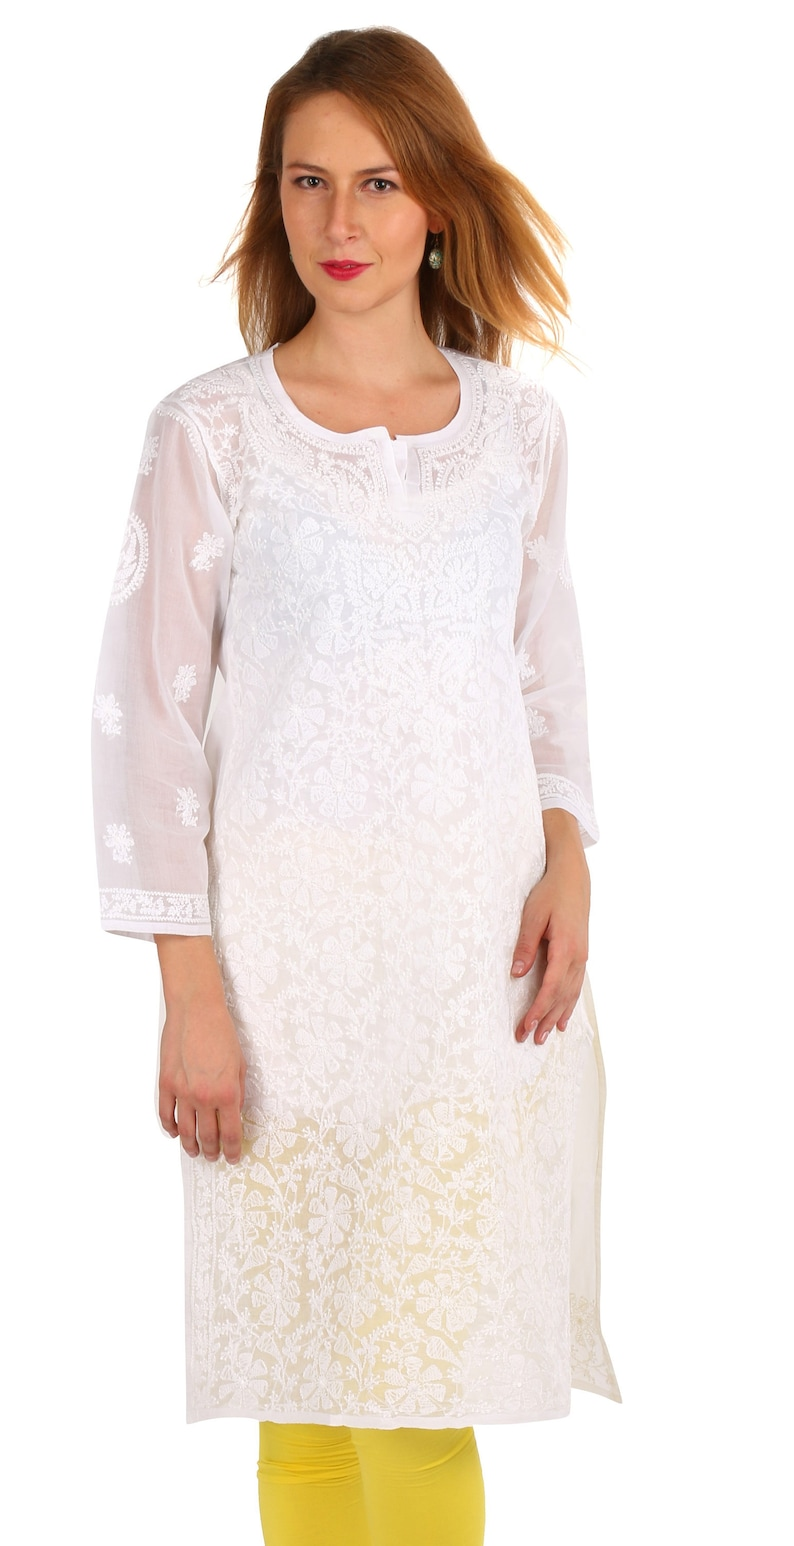 Woman Cotton White chikankari Ladies kurta Tops Tunic Blouse Indian Hand  Embroidery work handmade for girl dresses boho Multiple sizes